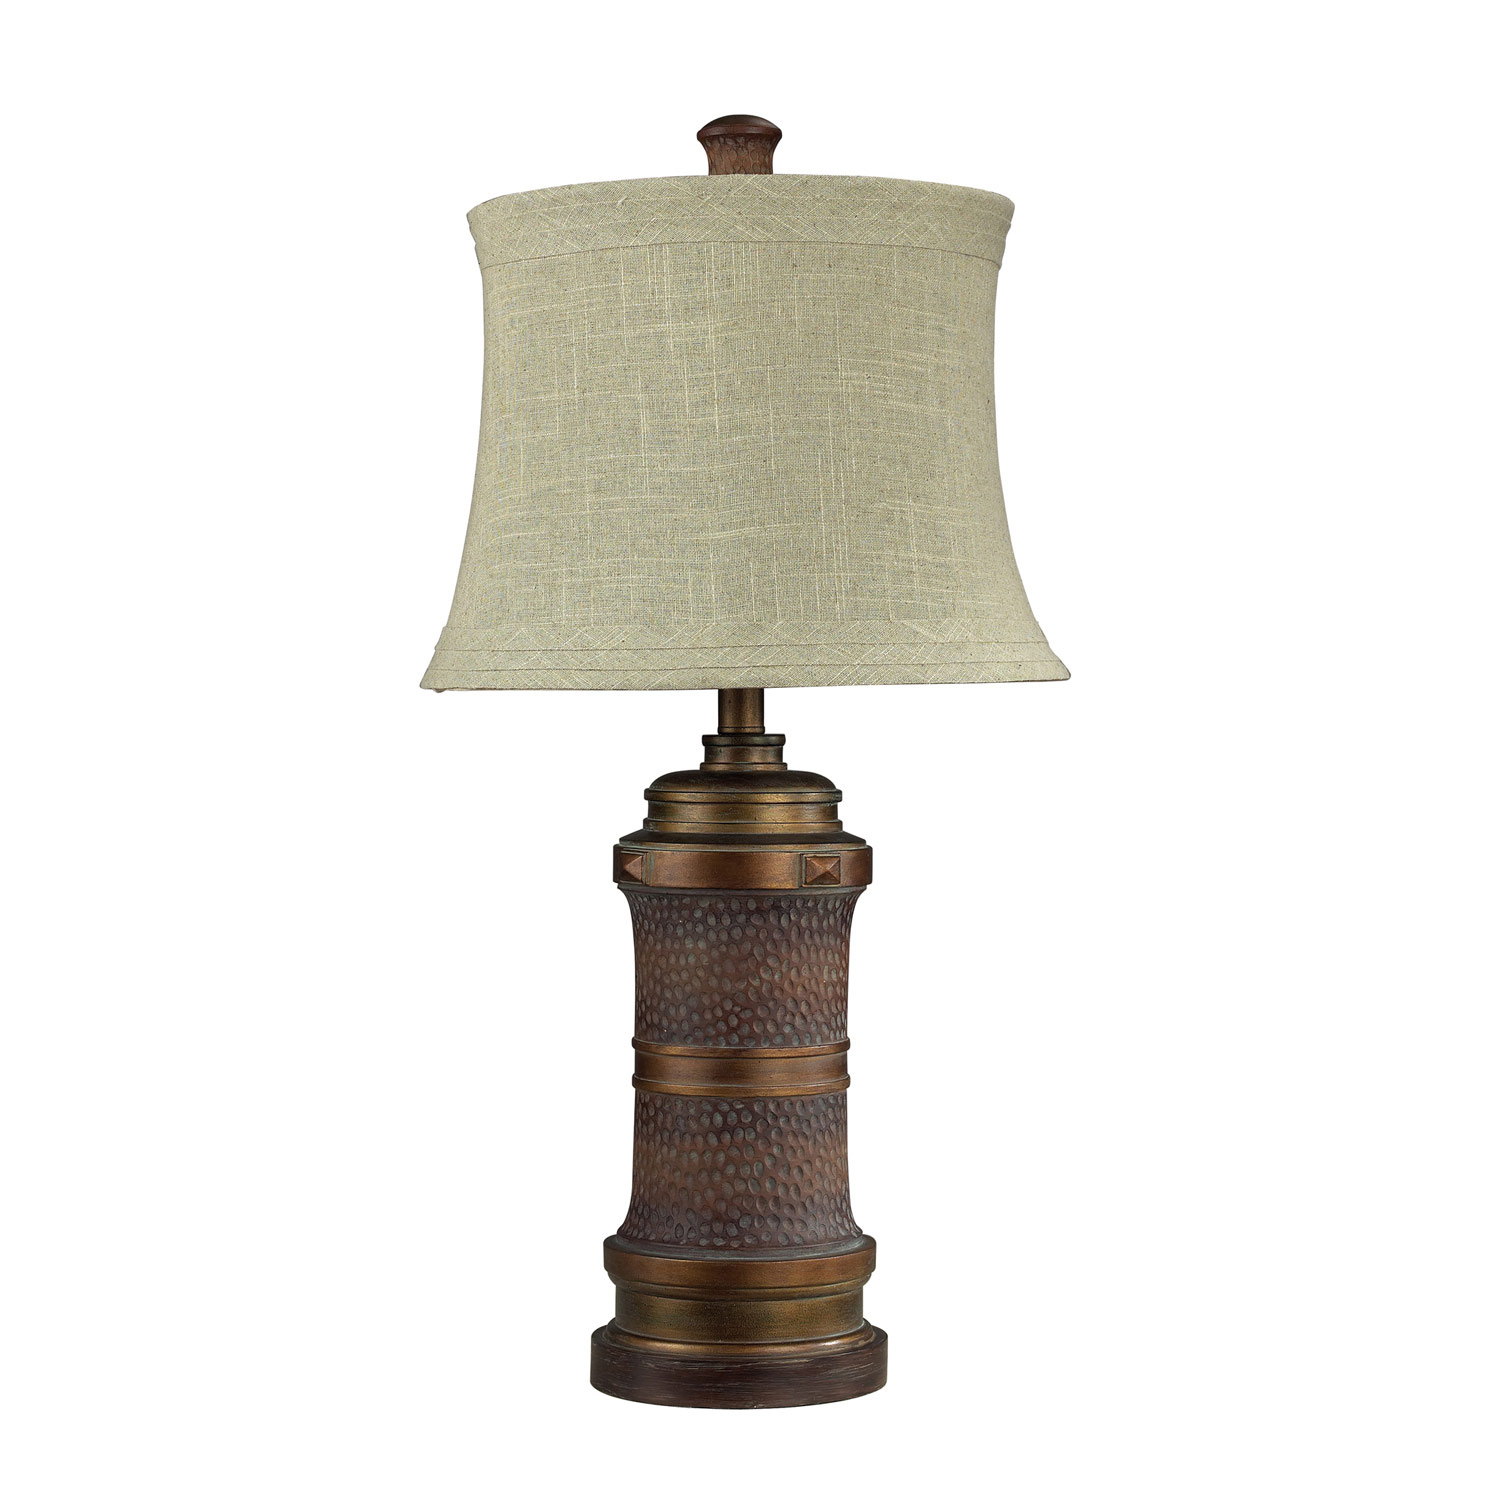 Elk Lighting D2027 Billiard Table Lamp